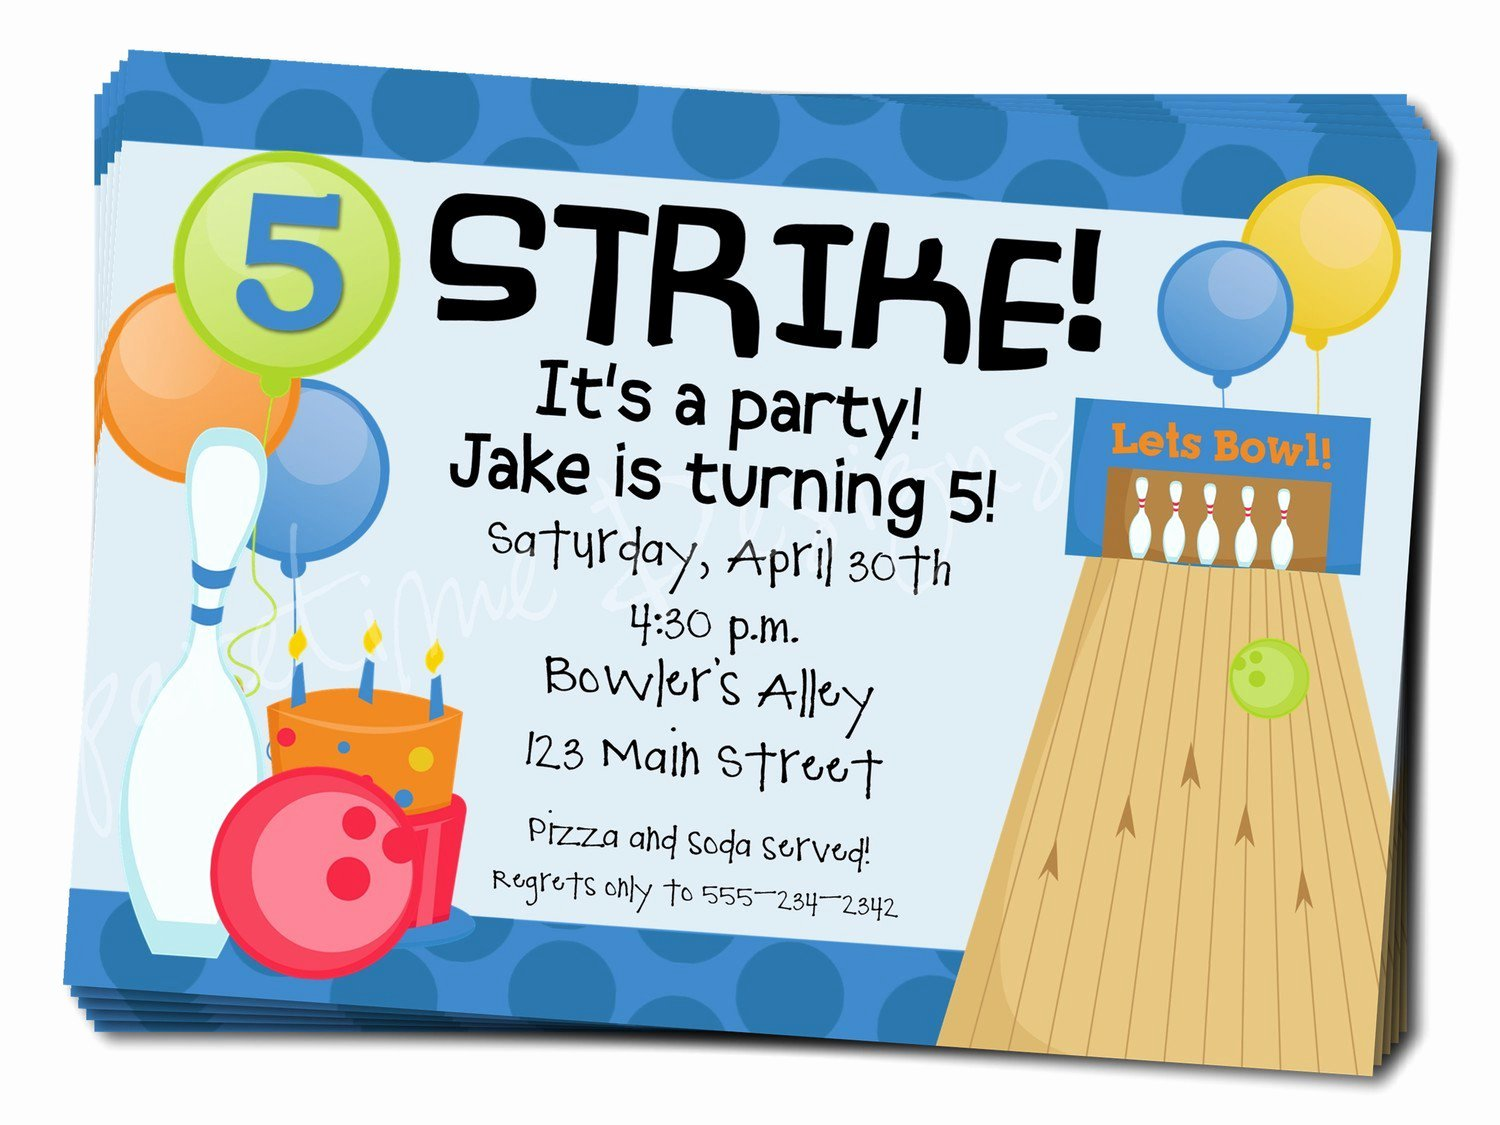 Bowling Invitation Template Free Unique Bowling Birthday Party Invitation Wording